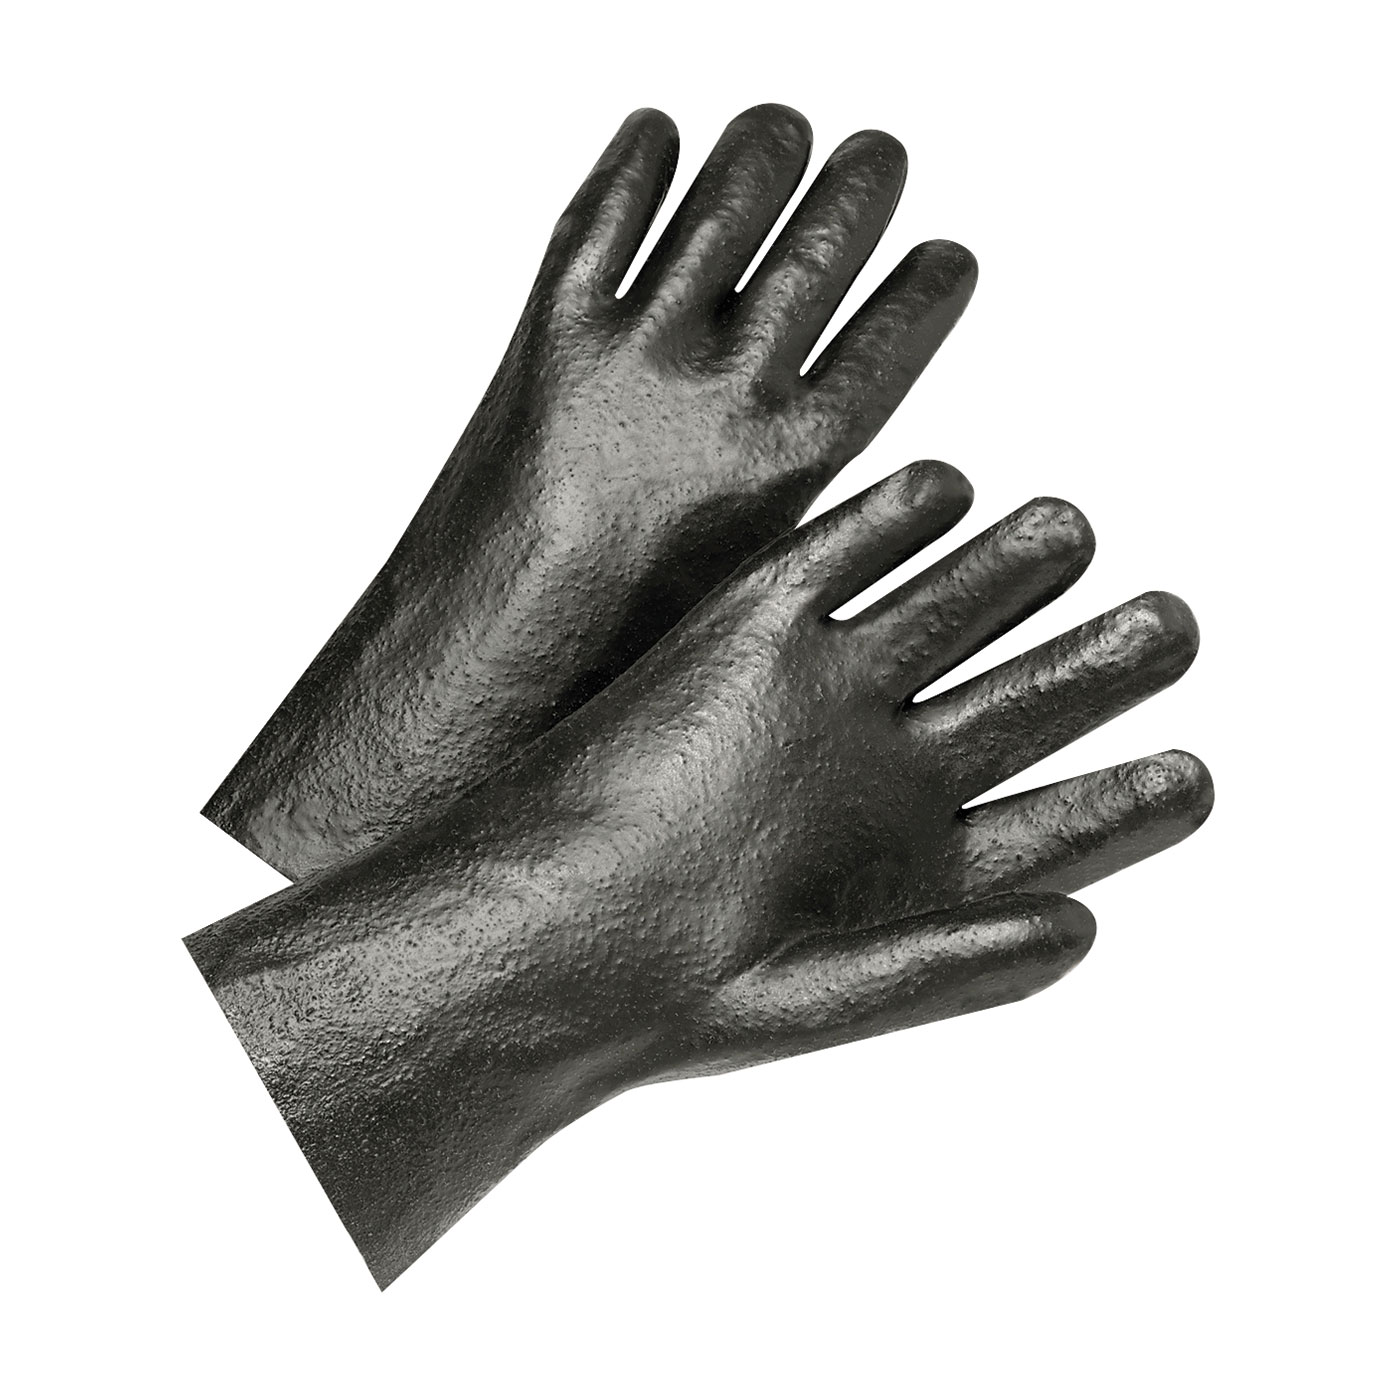 "PVC Dipped Glove with Interlock Liner and Semi-Rough Finish - 12"", Black, L"